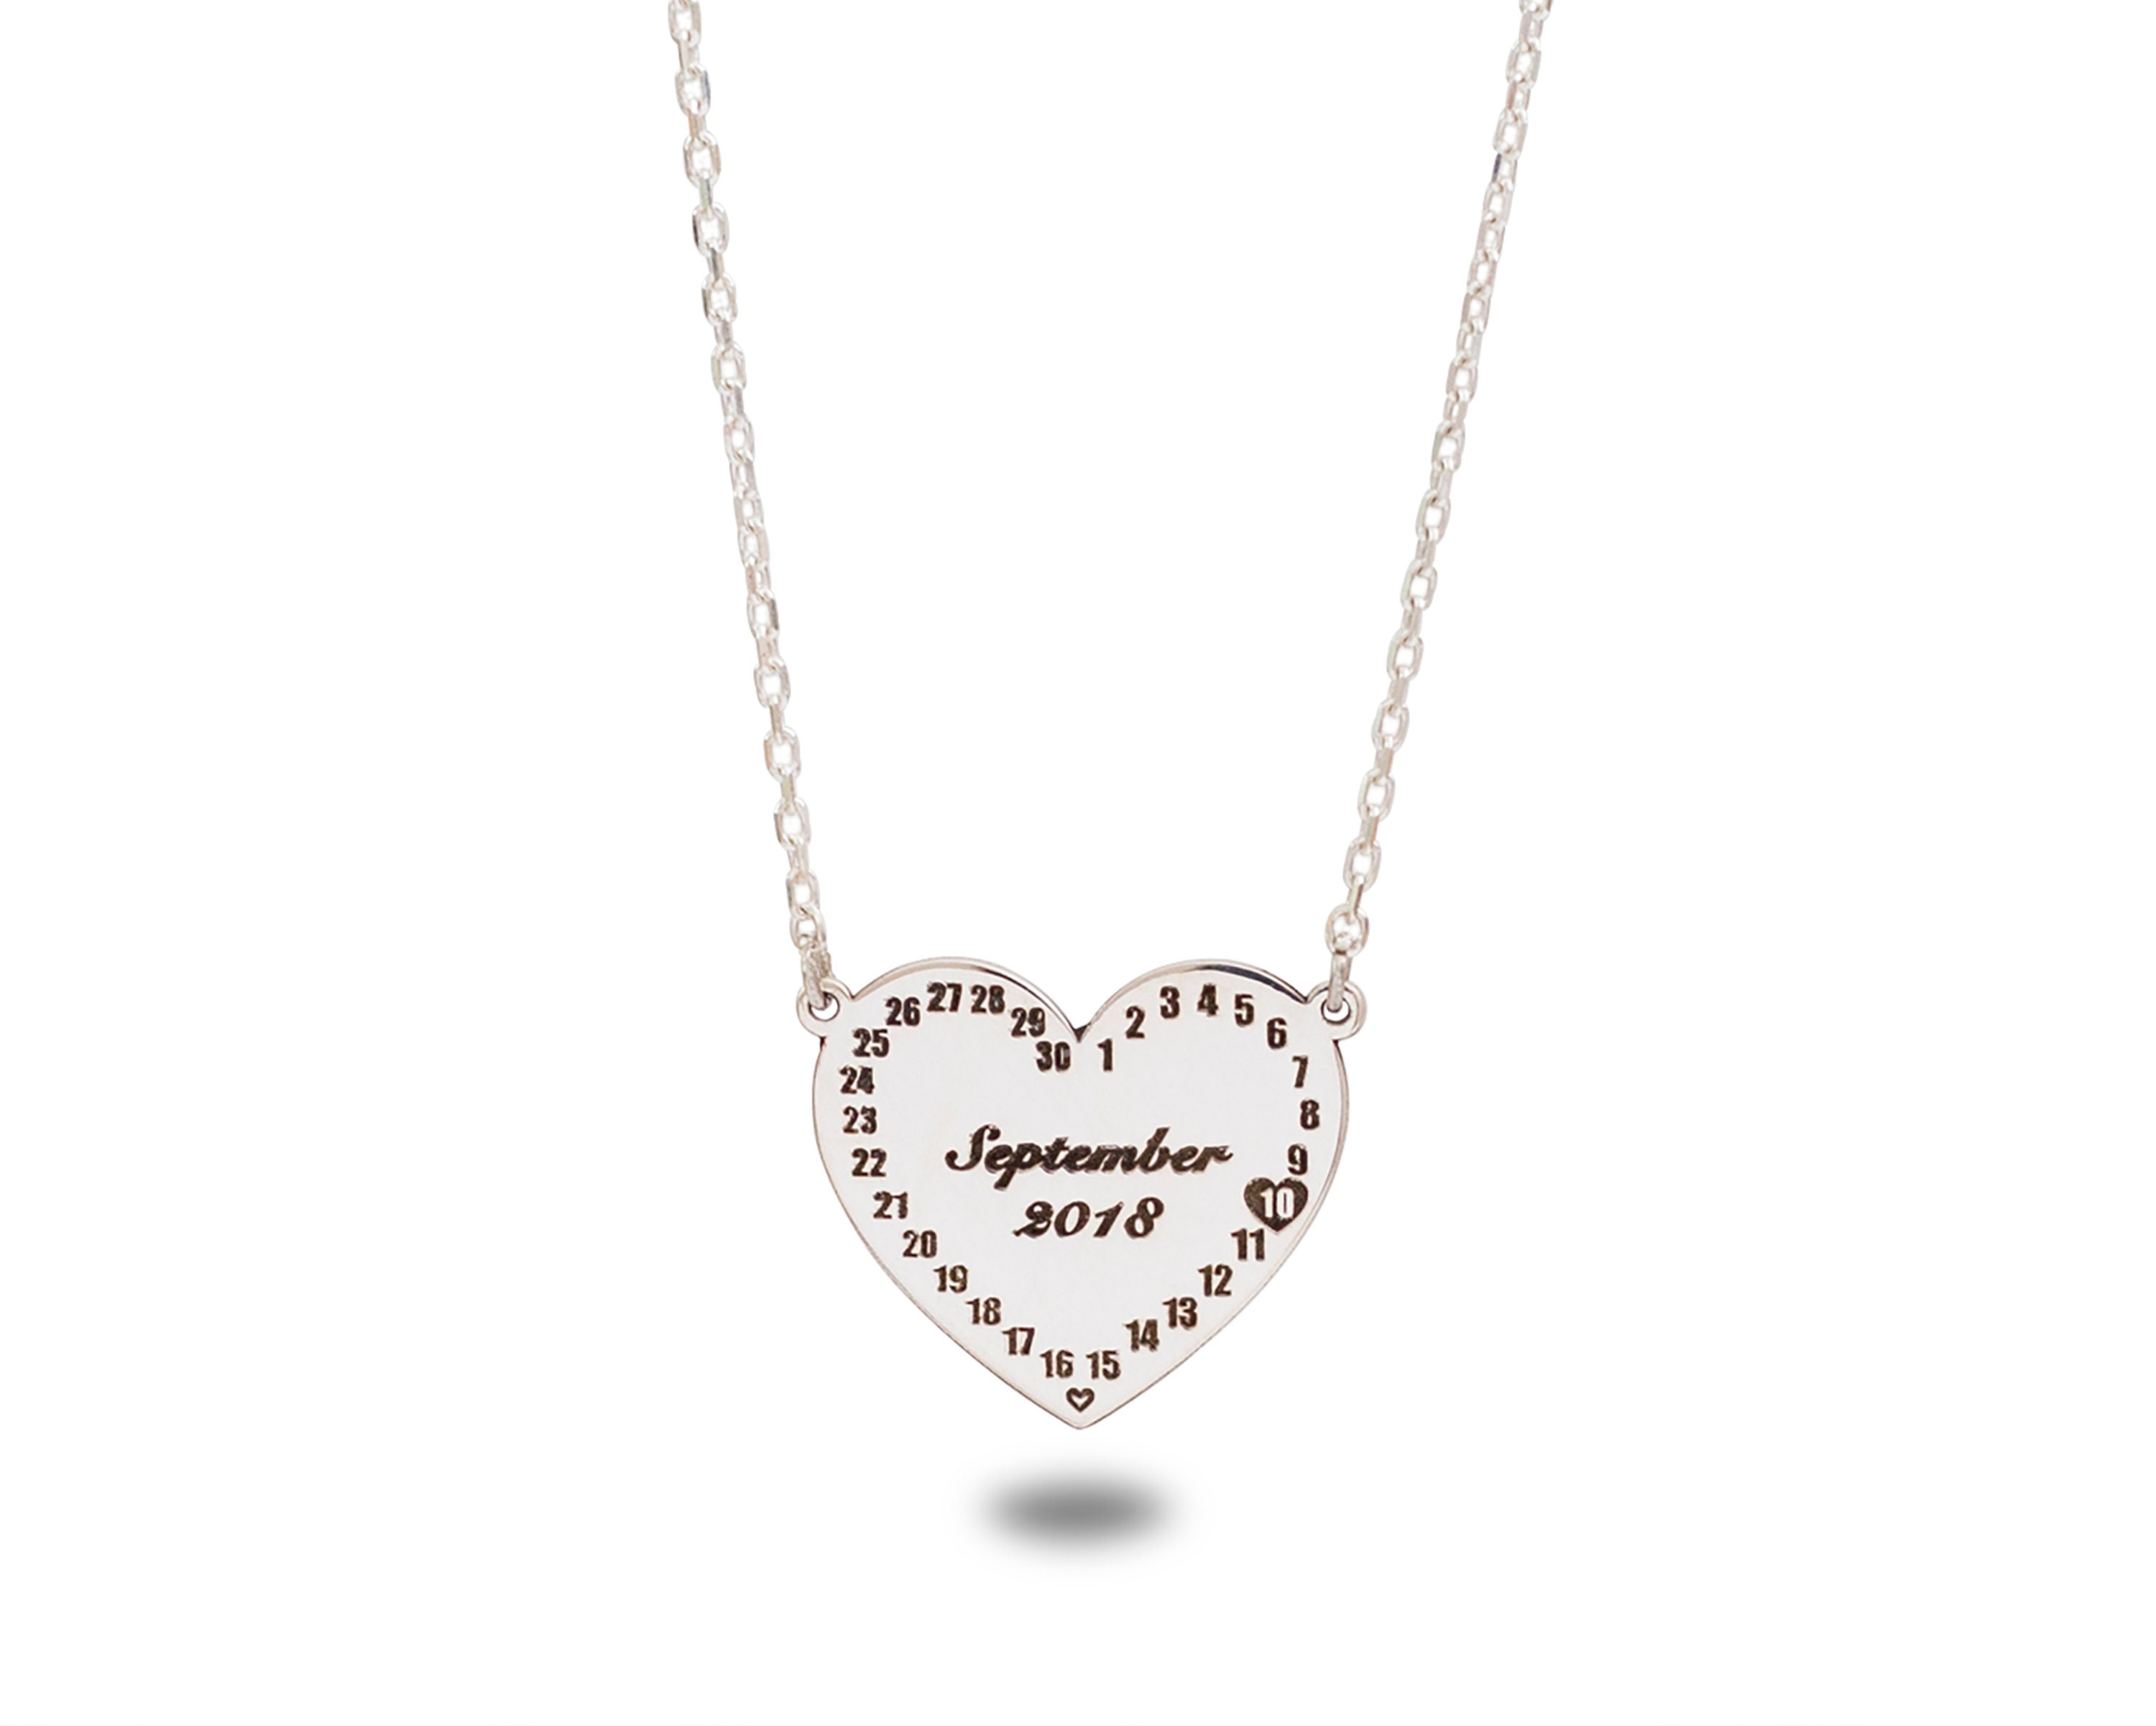 925 STERLING SILVER PHOTO TEXT CUSTOM ENGRAVED HEART PENDANT WITH CHAIN OPTIONS